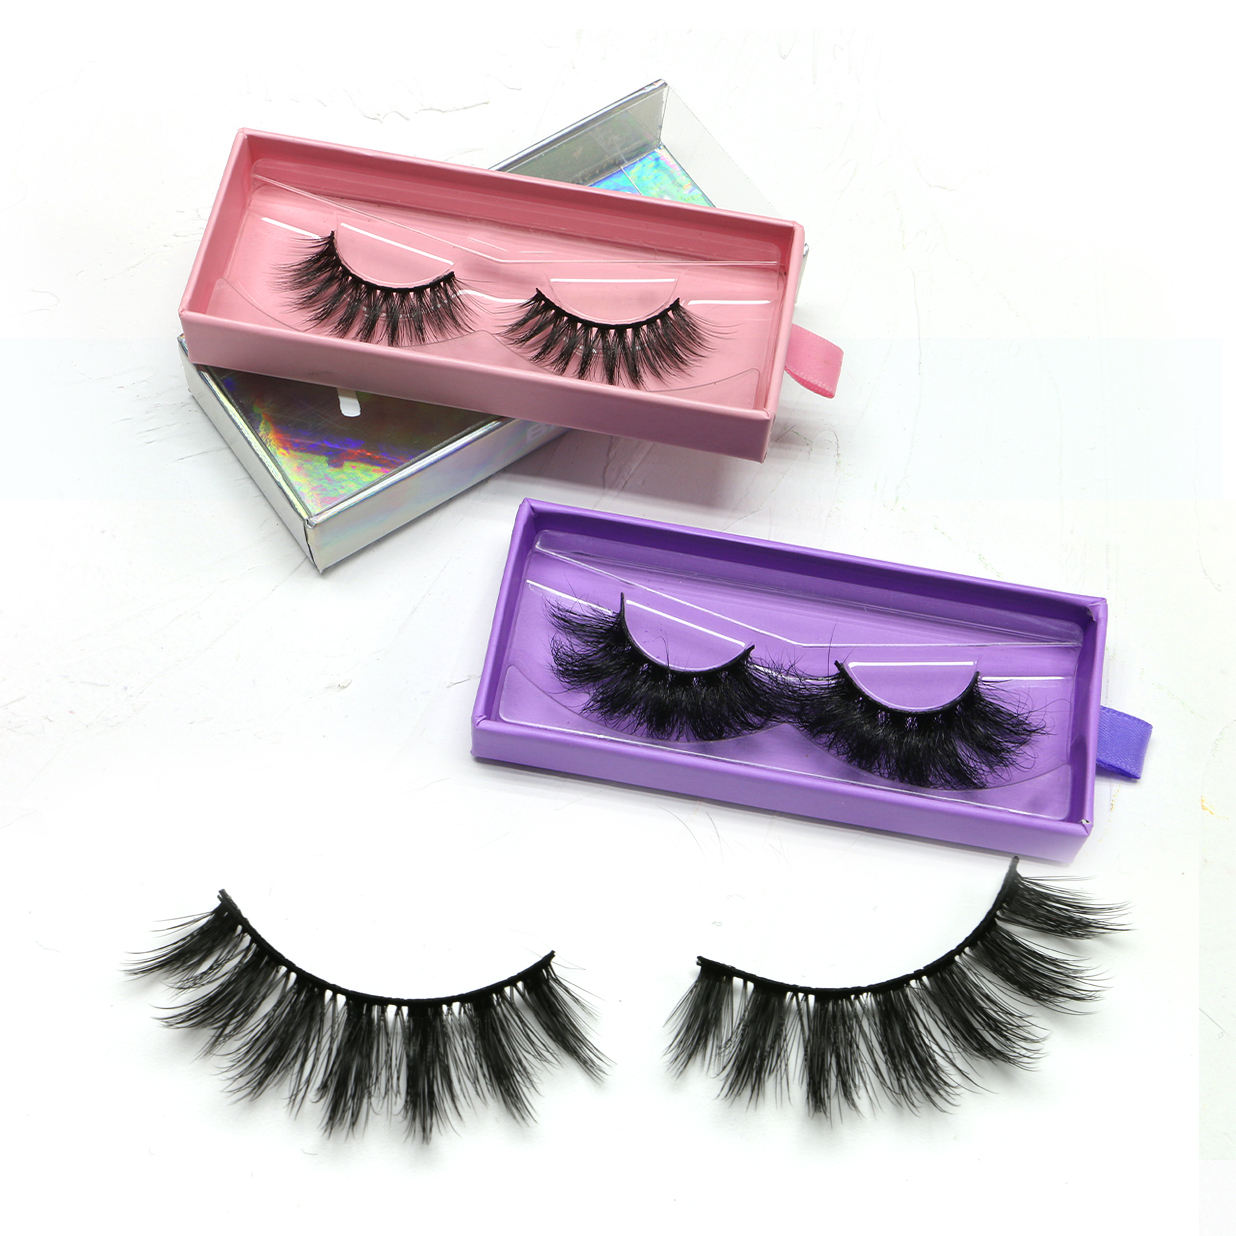 New Arrival Factory Price False Eyelash 3D Plus Faux Mink, 3D Faux Mink Eyelash Private Label Eyelash Box